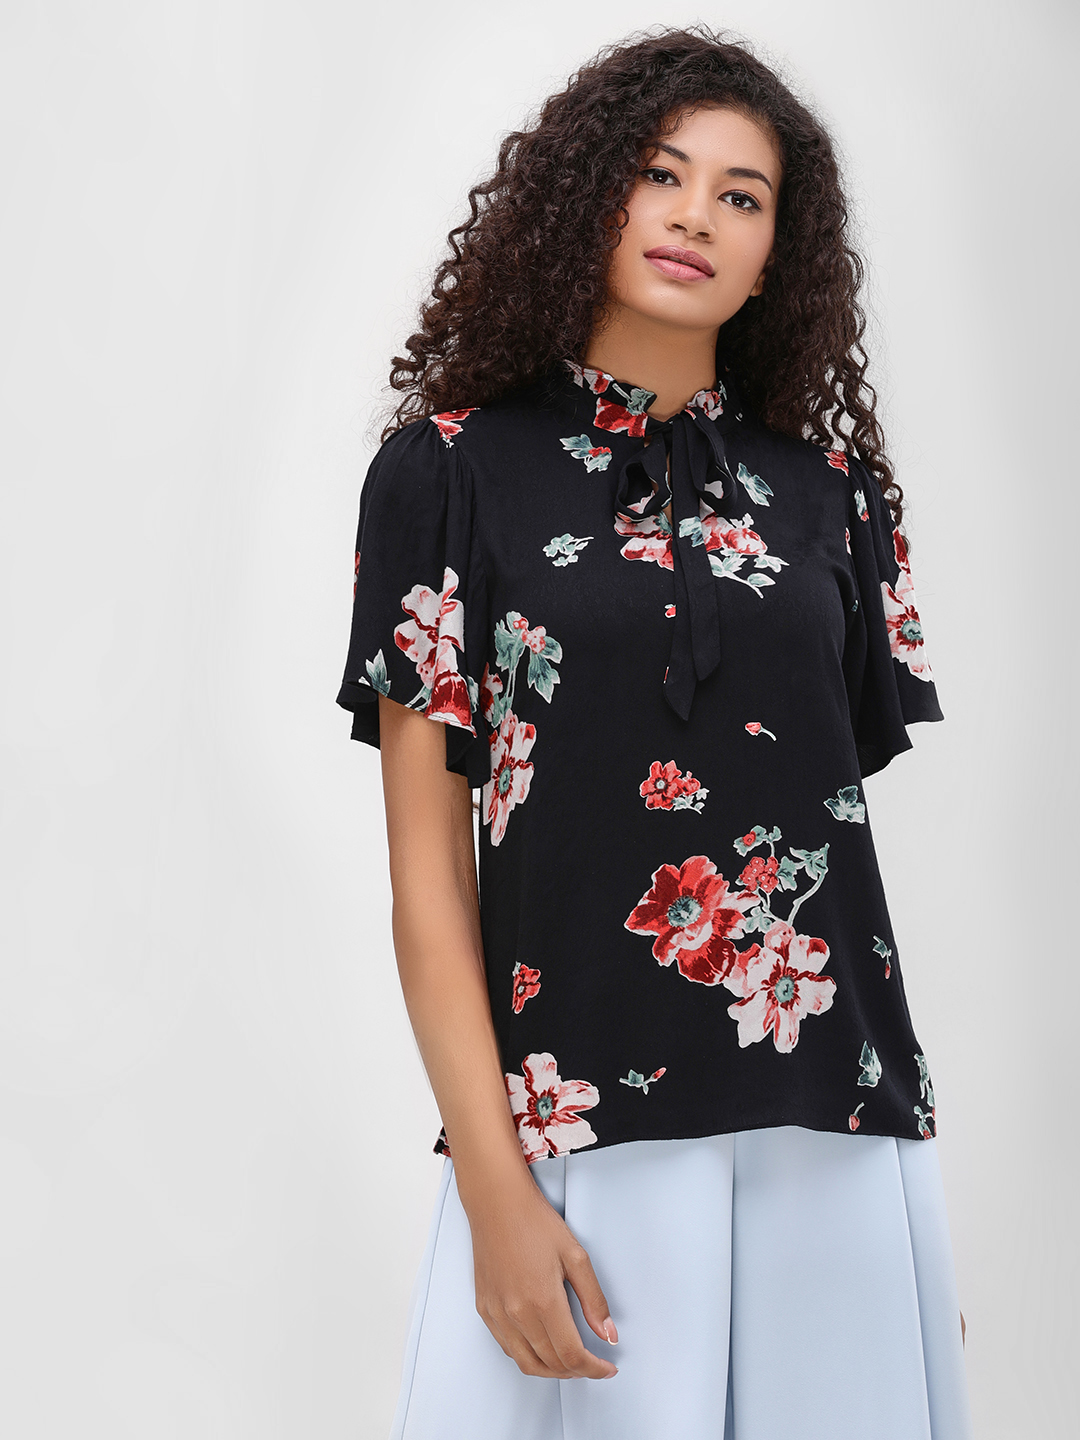 Cover Story Print Floral Printed Tie Neck Blouse 1